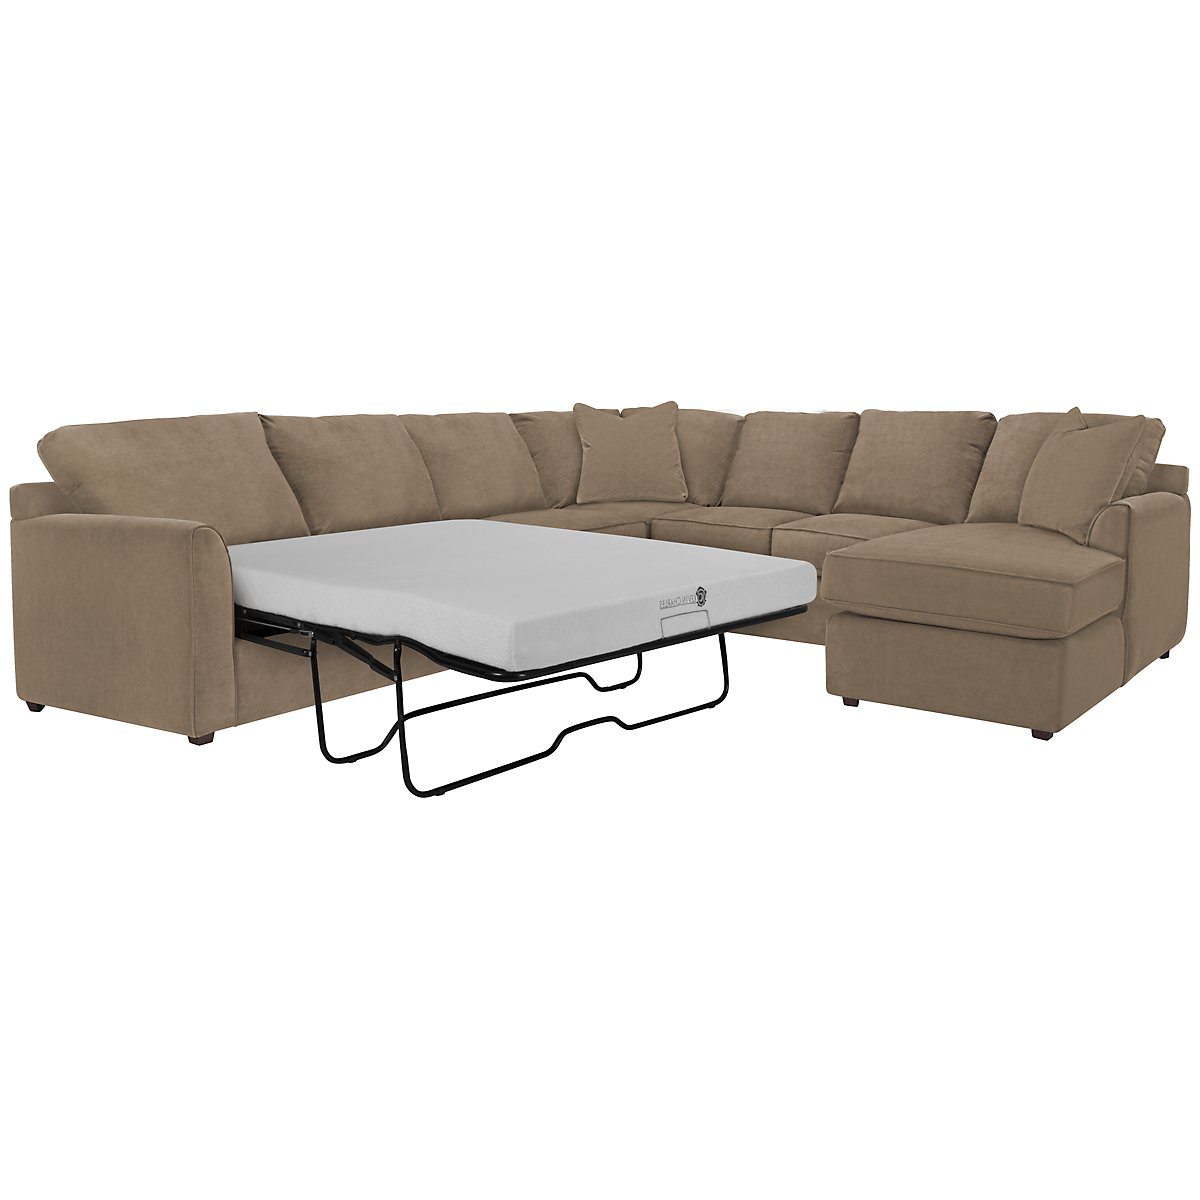 Express3 Light Brown Microfiber Right Chaise Memory Foam Sleeper Sectional